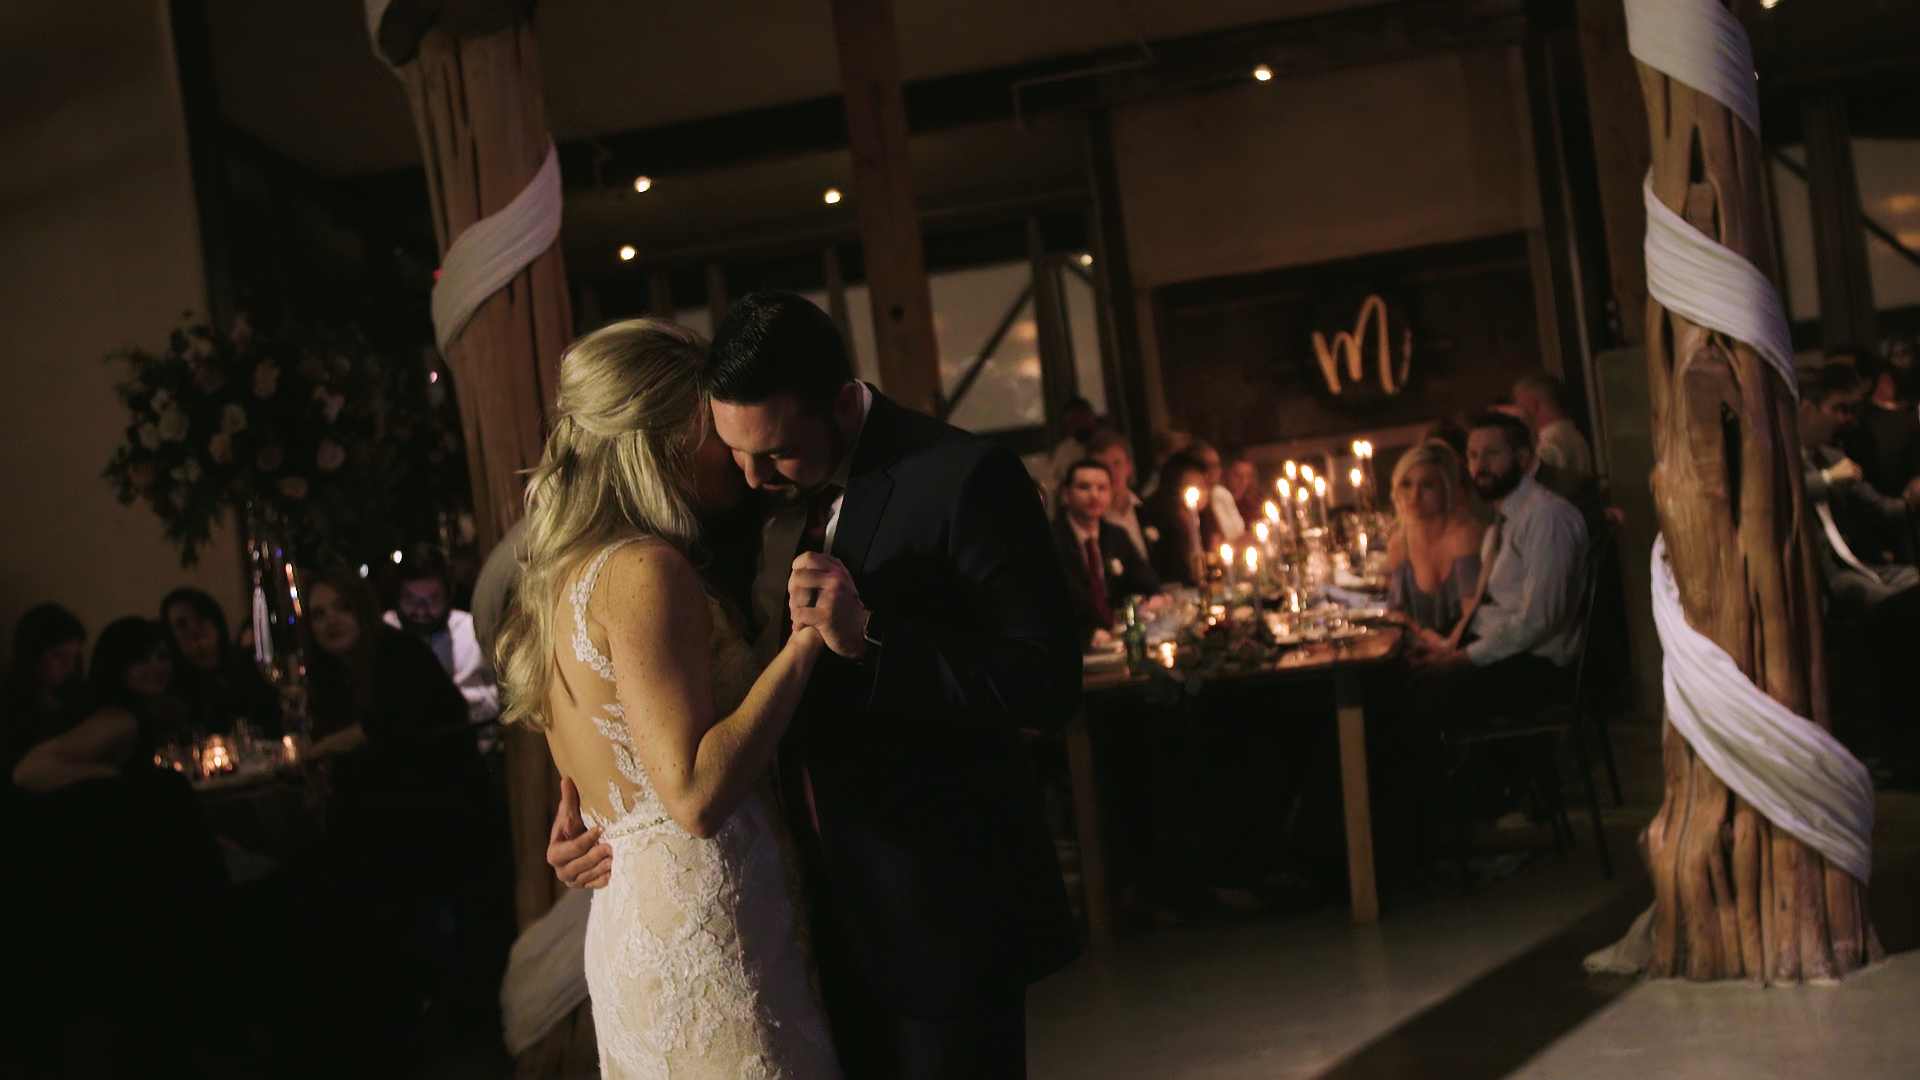 Barr_Mansion_Austin_Wedding_Videographer_New_Beginnings_Films_49.png